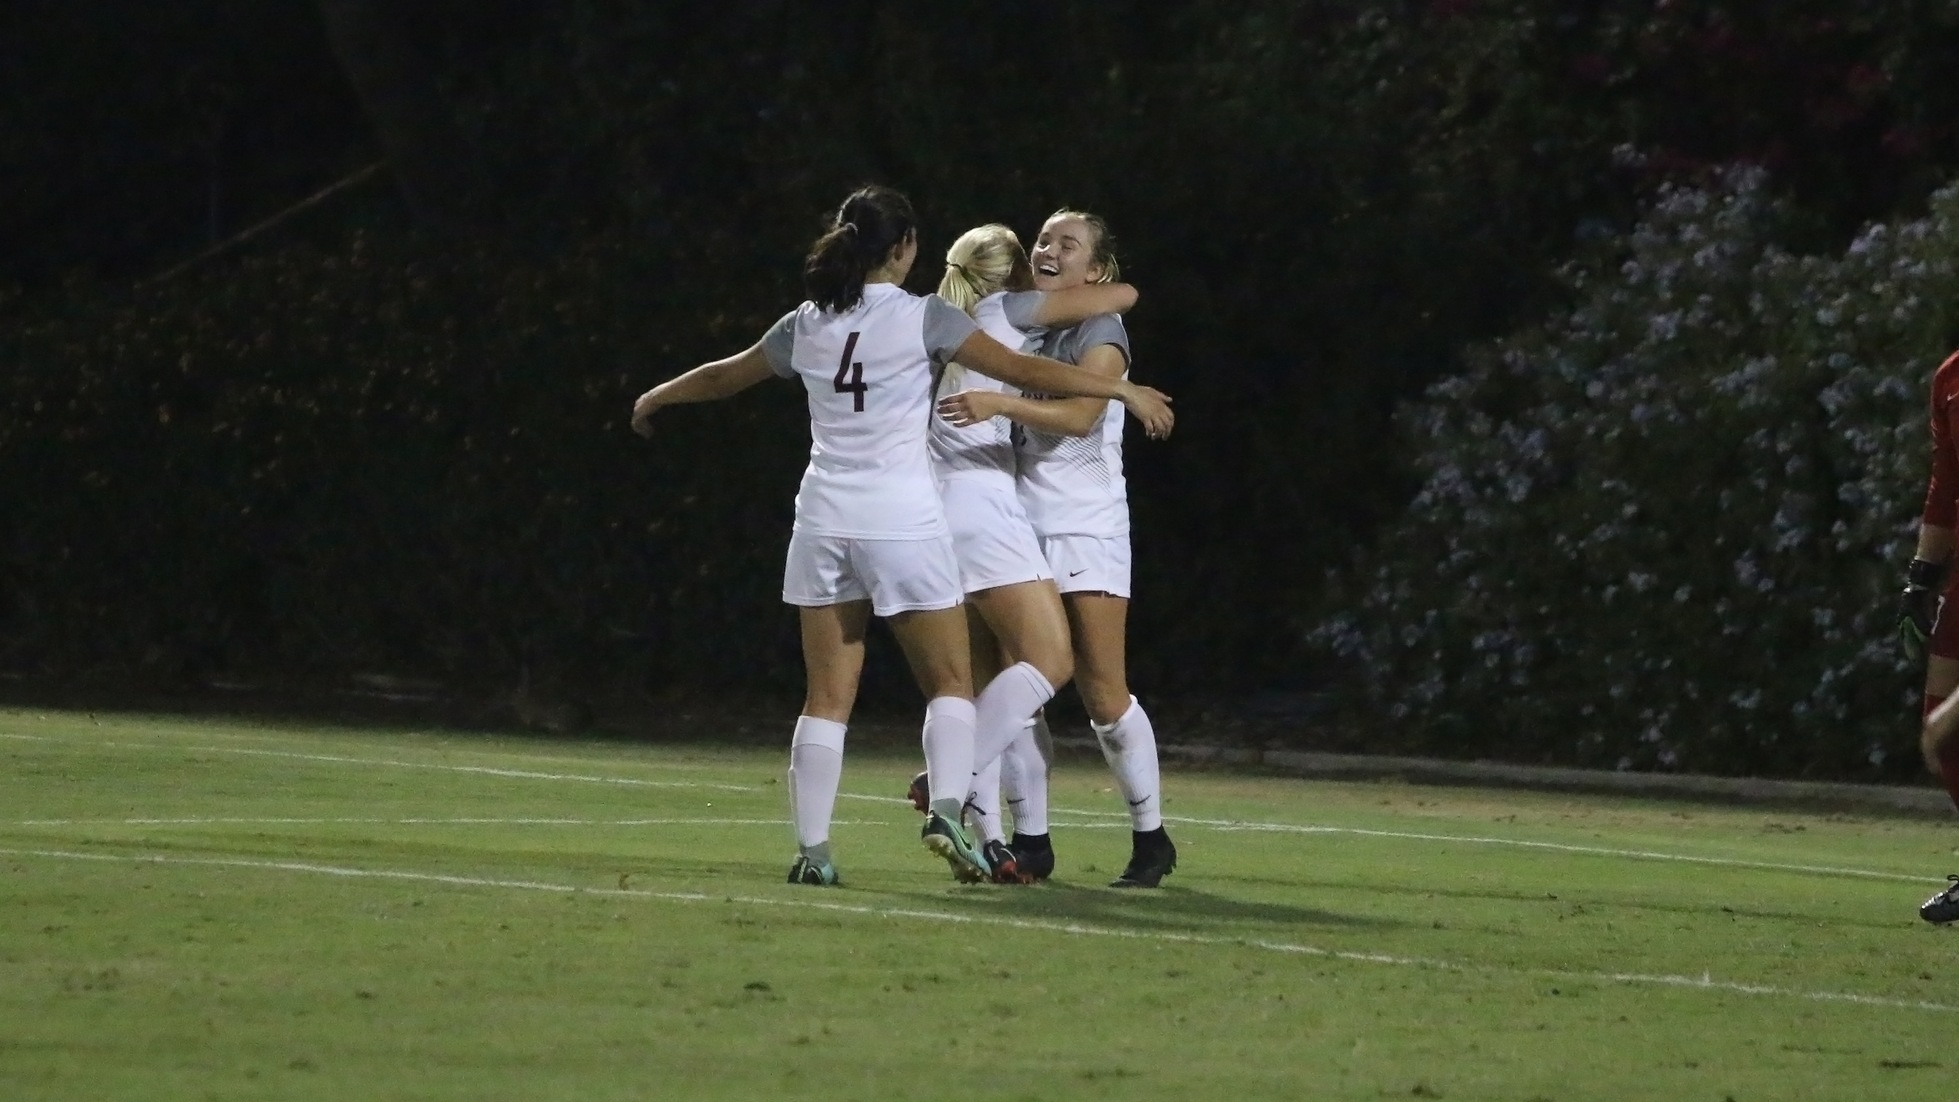 Second Half's The Charm as CMS Women's Soccer Edges Chapman 1-0